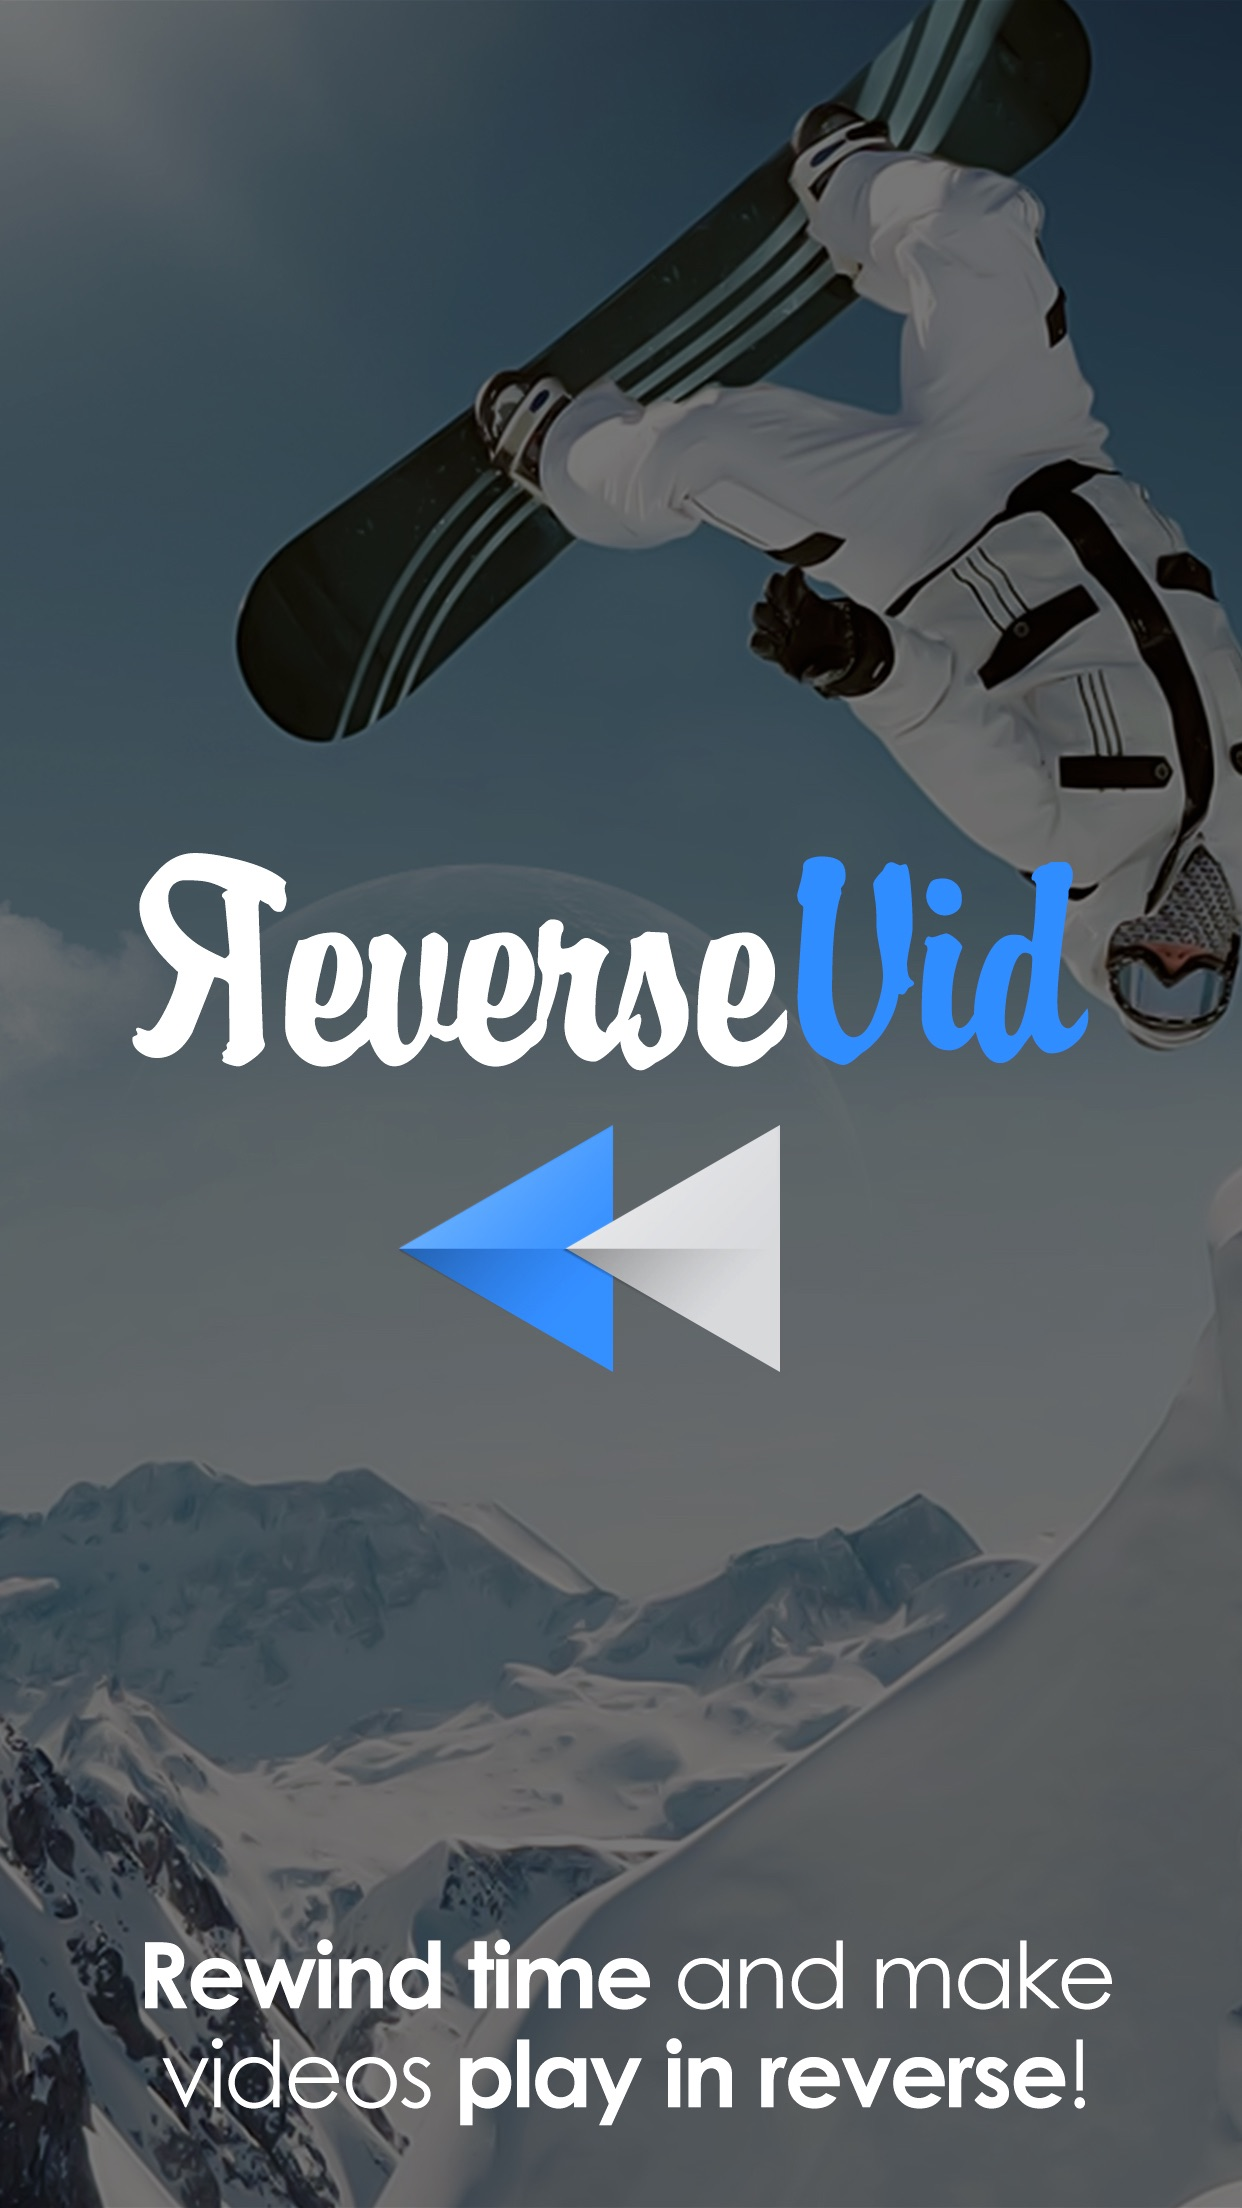 Reverse Vid - Video Rewind Editor for Backwards & Instant Replay Movies For Vine and Instagram Screenshot